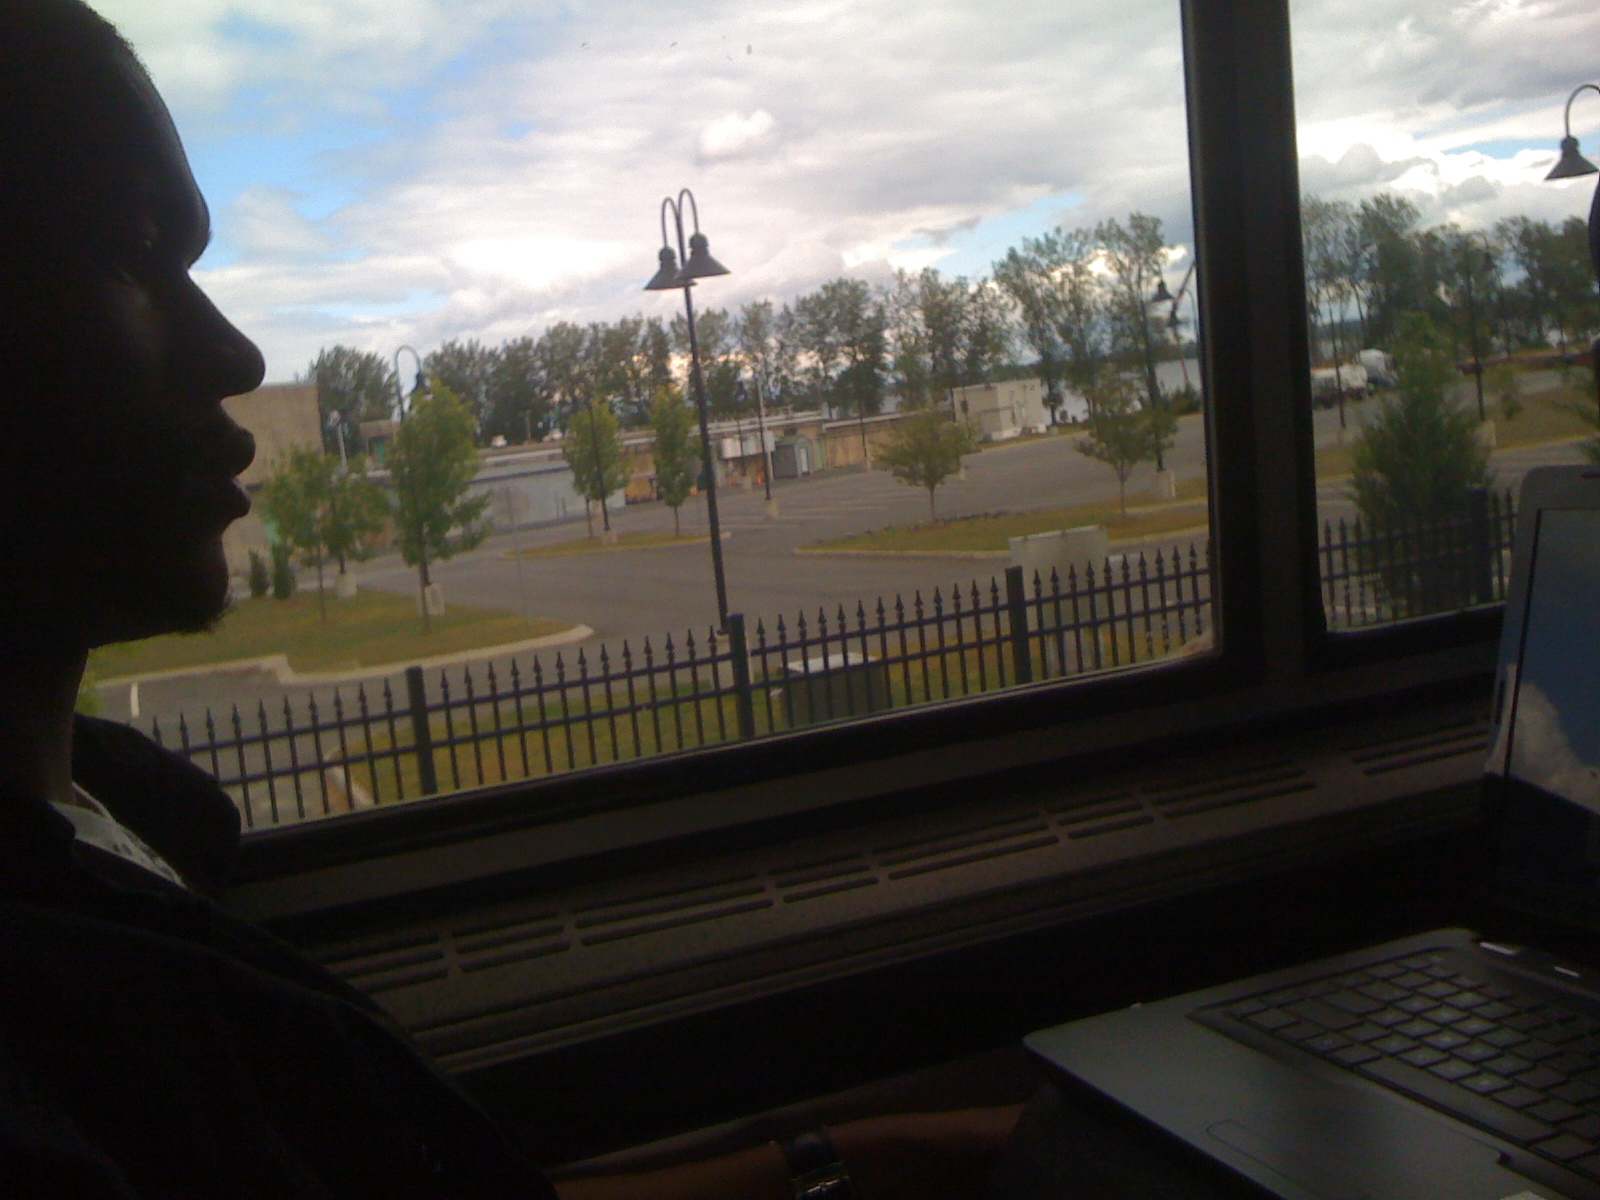 Crossing the border on a train: NYC to Canada